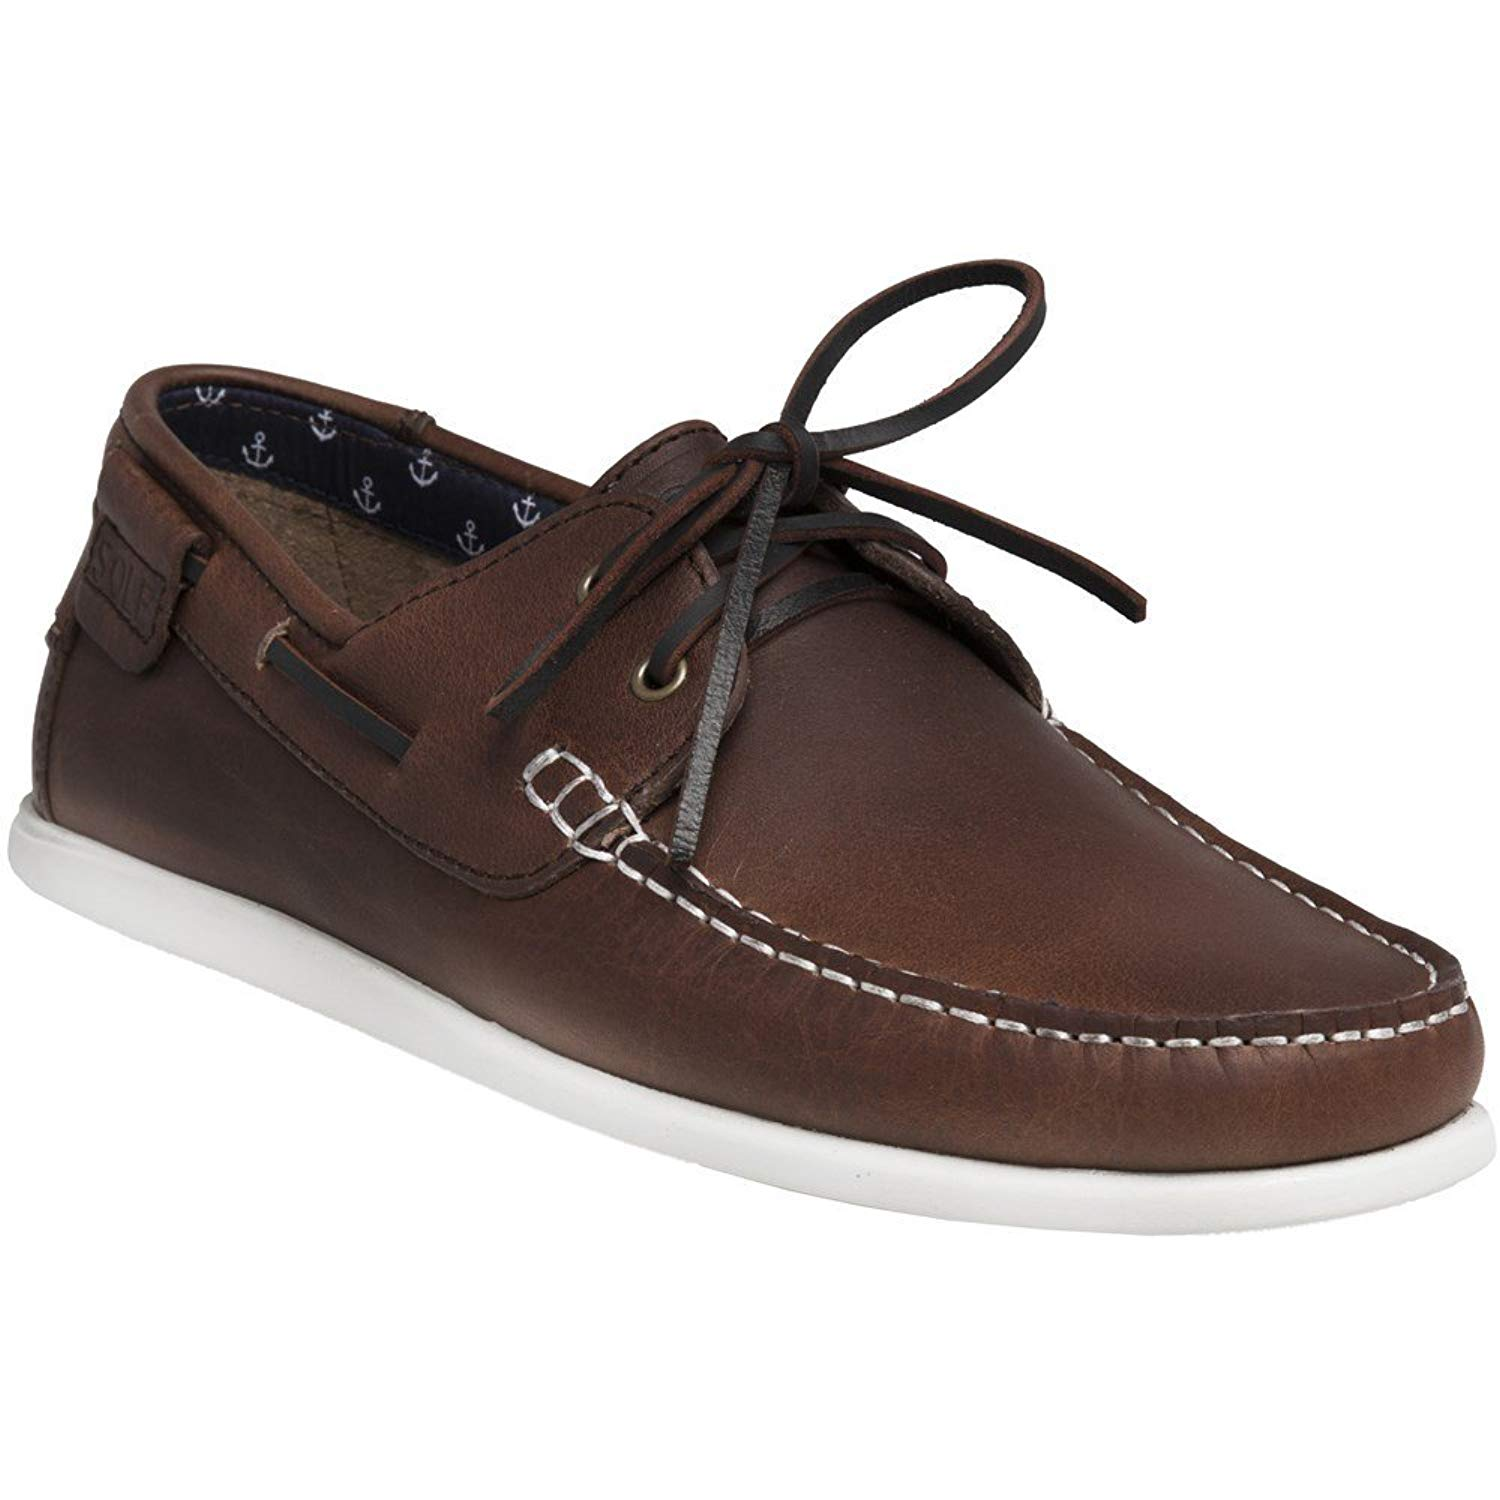 ae0bf1d7c8d4 Get Quotations · Sole Penry Mens Shoes Brown